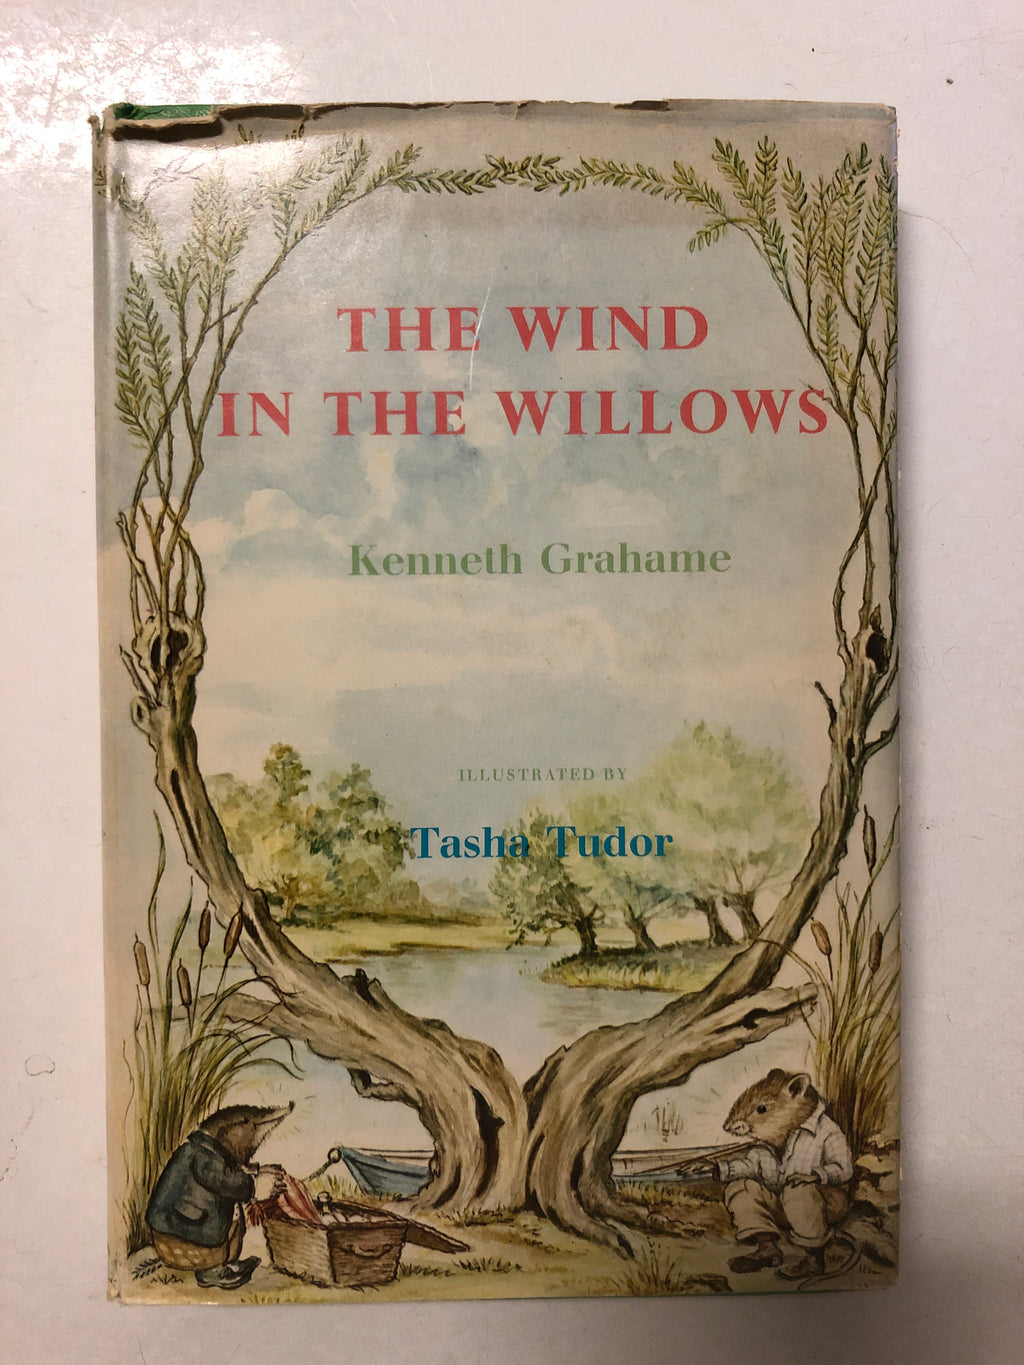 The Wind in the Willows - Slick Cat Books